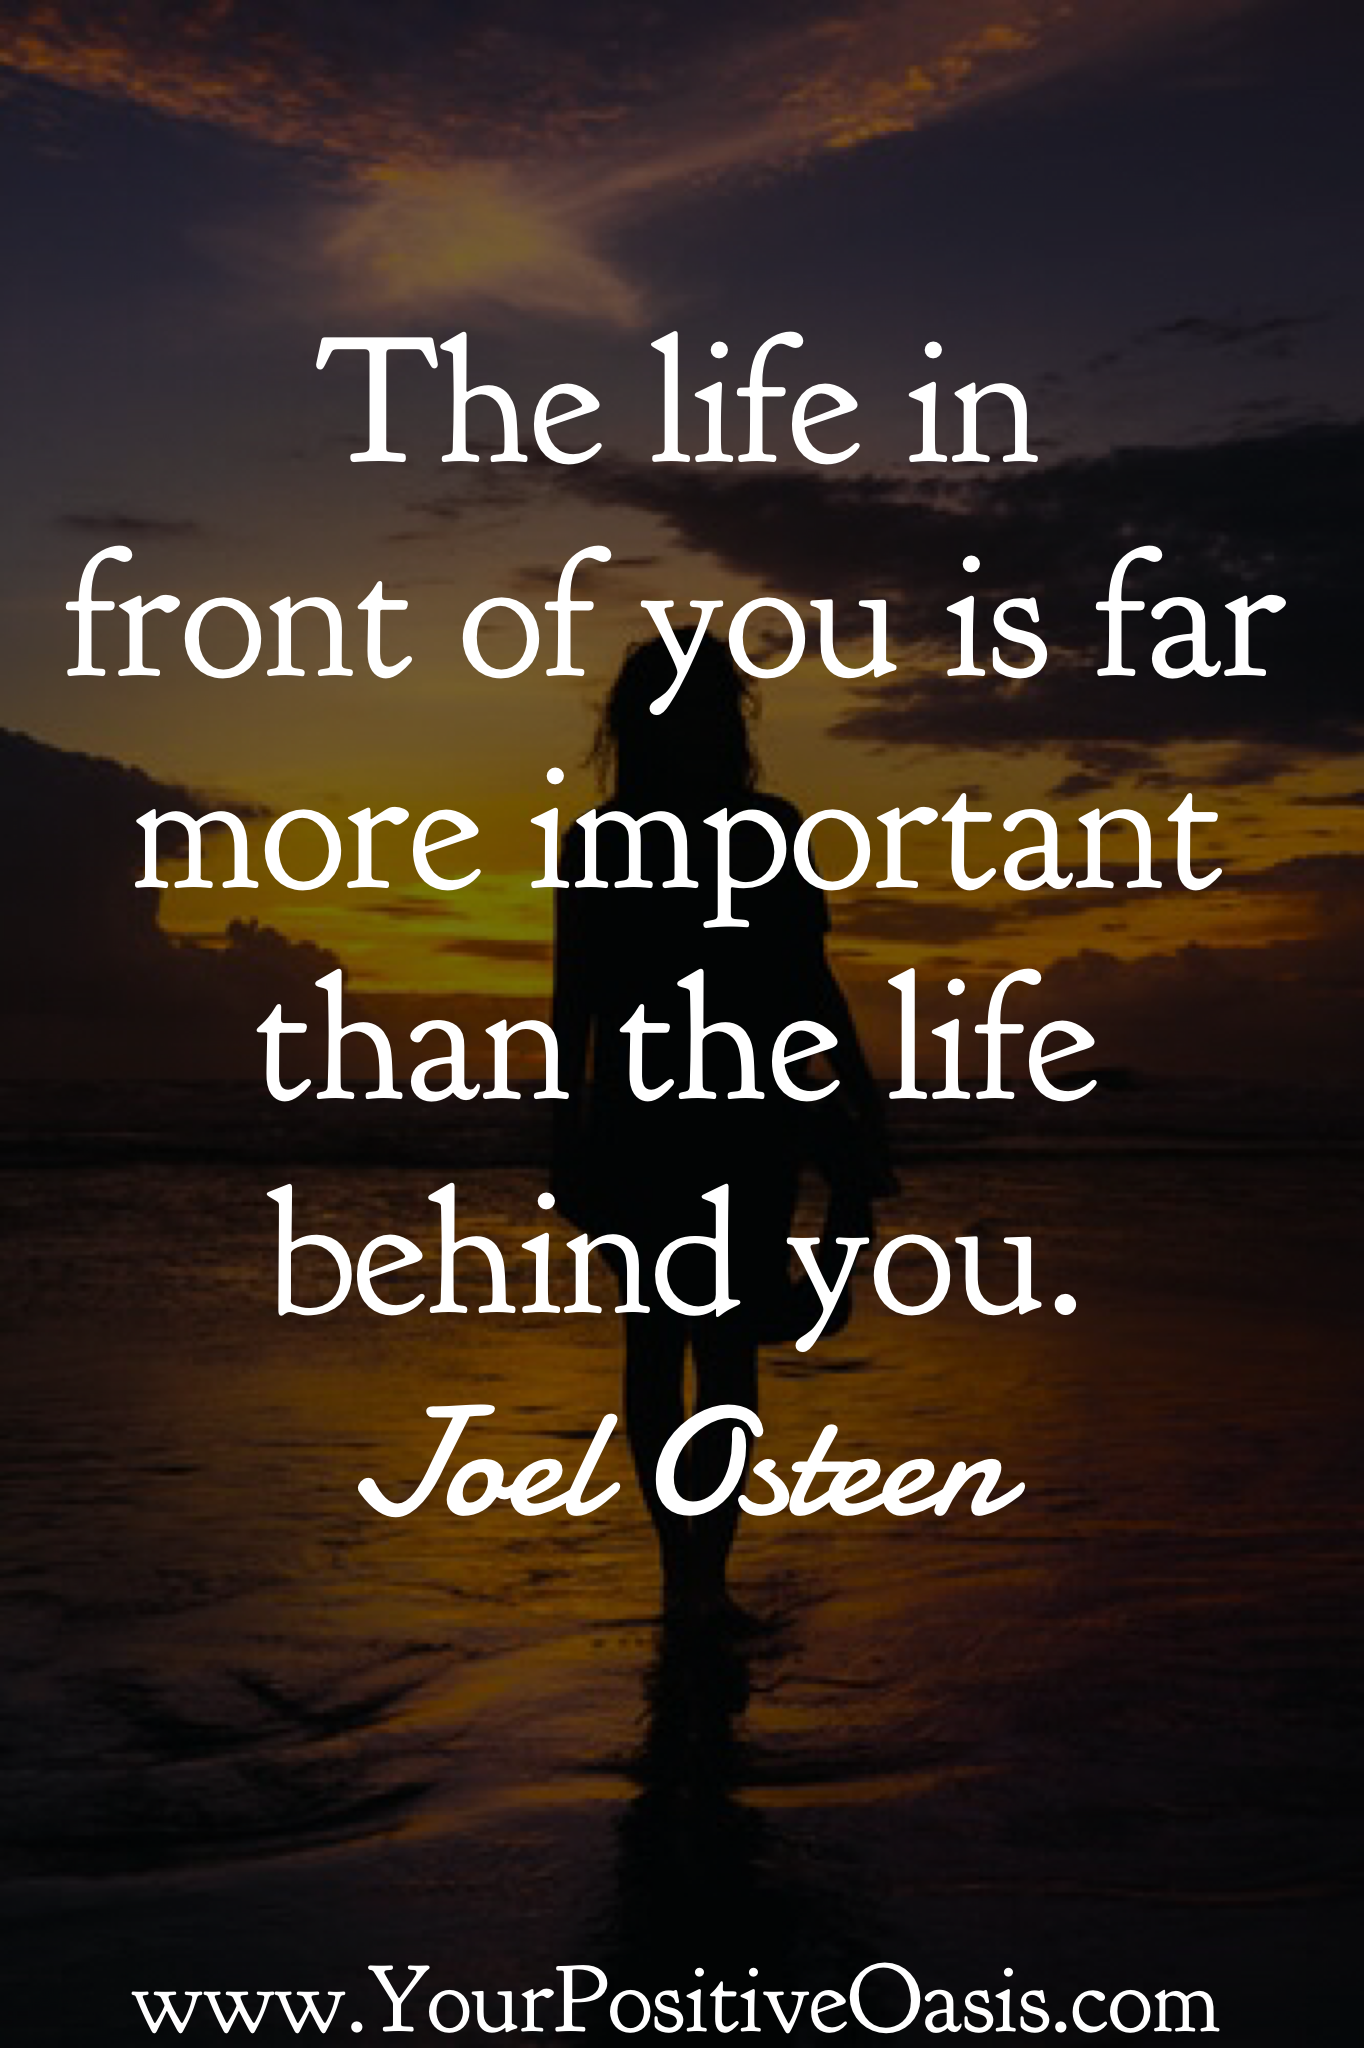 30 Highly Inspirational Joel Osteen Quotes | Wisdom quotes ...